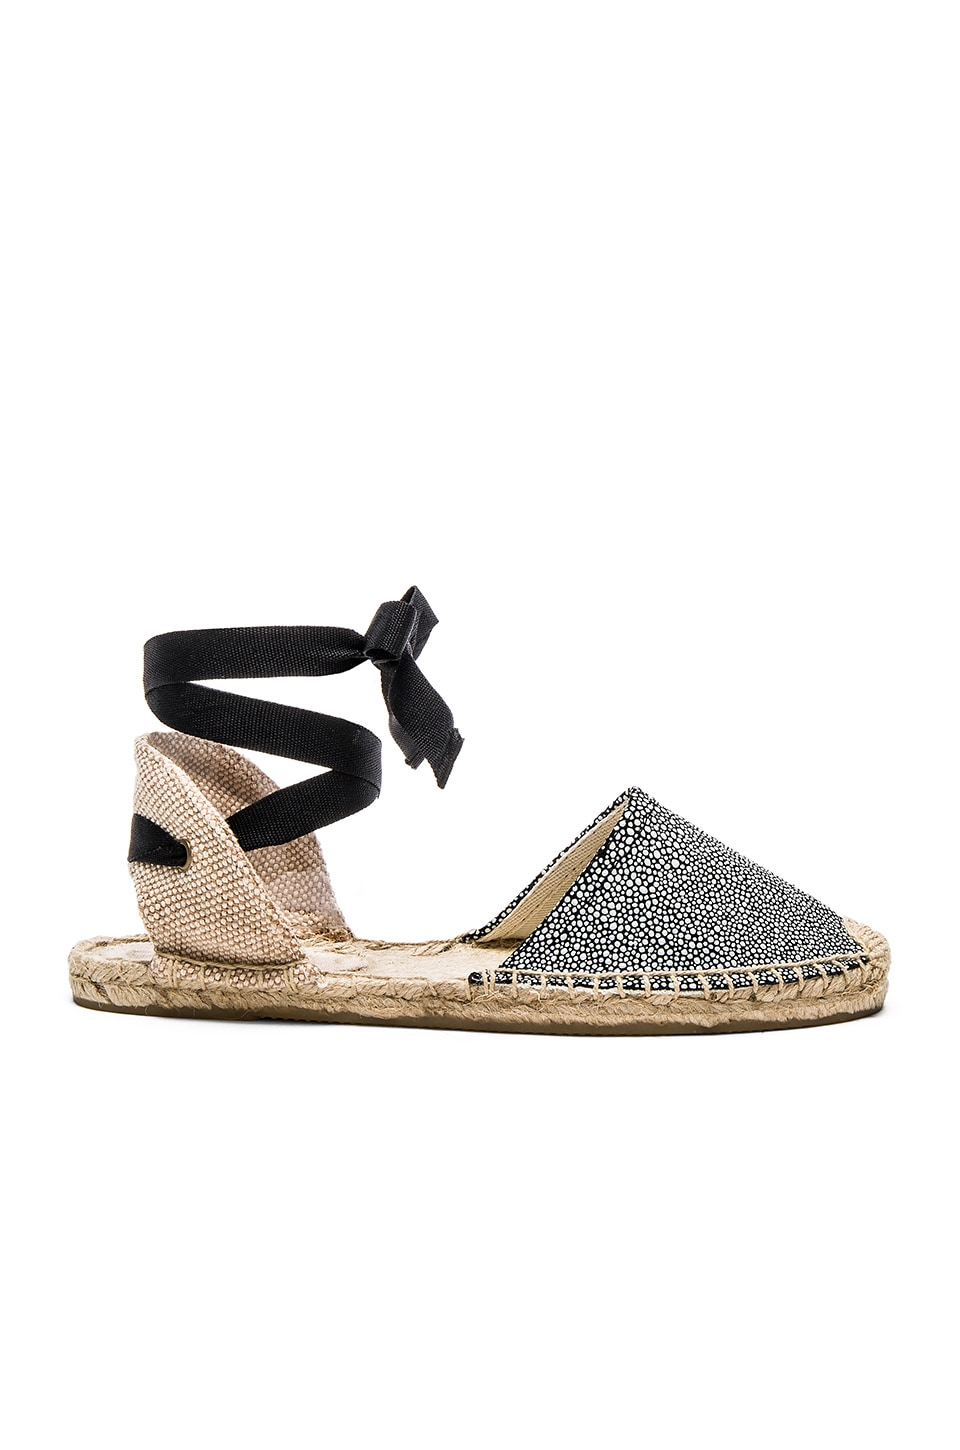 Soludos Classic Sandal Textured Leather in Caviar Black